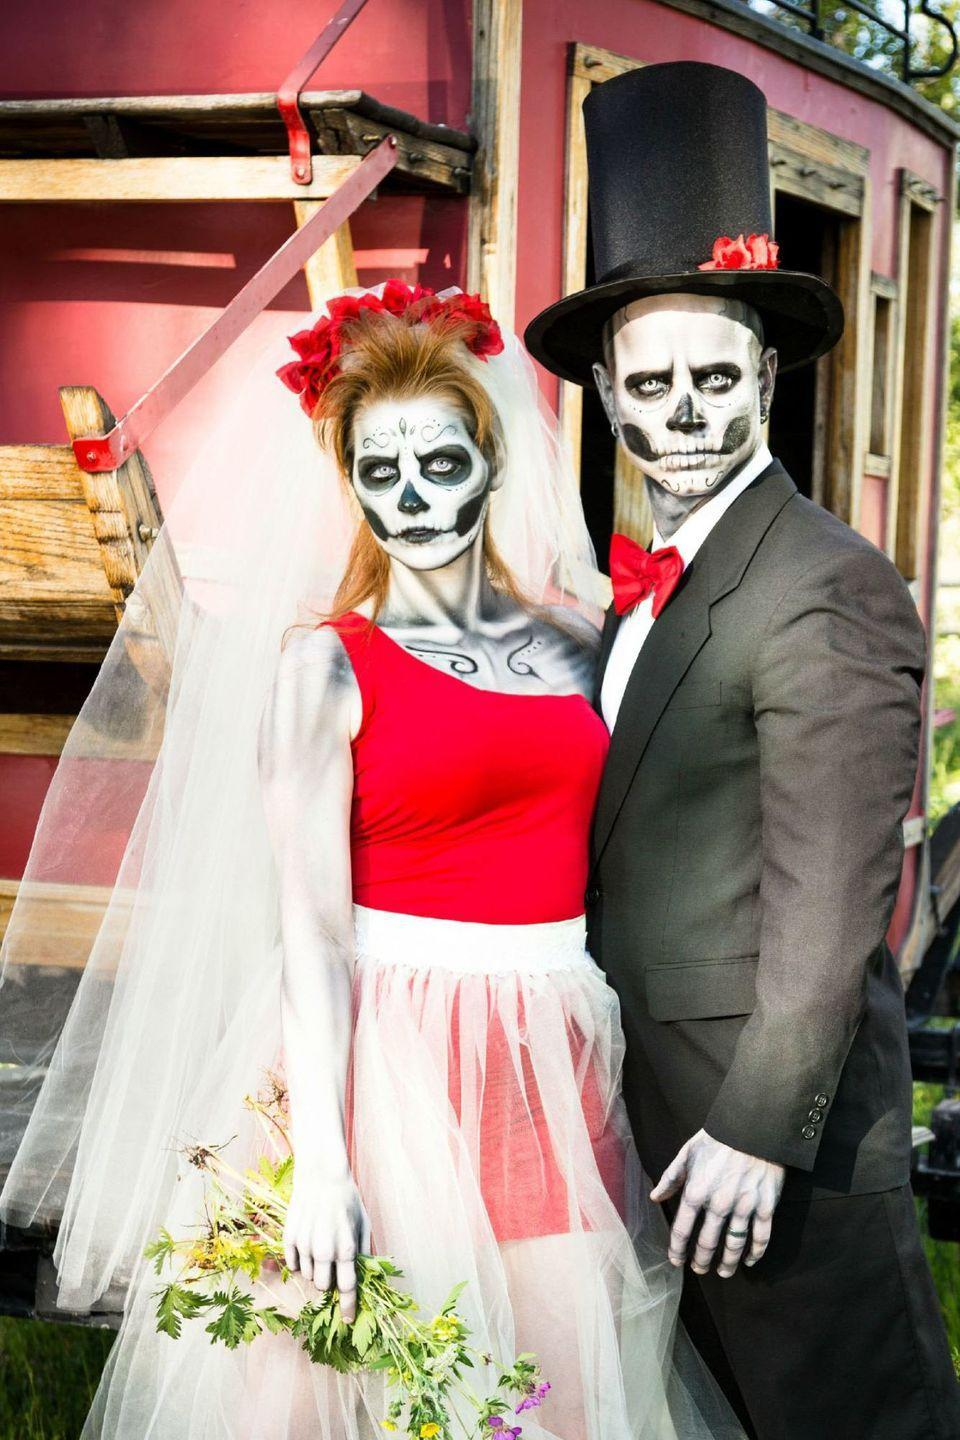 """<p>If you don't want to dress up as a typical bride and groom, you can pair <a href=""""https://www.goodhousekeeping.com/holidays/halloween-ideas/g2599/halloween-costumes-with-makeup-ideas/"""" rel=""""nofollow noopener"""" target=""""_blank"""" data-ylk=""""slk:skeleton makeup"""" class=""""link rapid-noclick-resp"""">skeleton makeup</a> with any formal attire look spooky on Halloween.</p><p><a class=""""link rapid-noclick-resp"""" href=""""https://www.amazon.com/Dress-Up-America-Non-Toxic-Crayons/dp/B01CFHSA0M/?tag=syn-yahoo-20&ascsubtag=%5Bartid%7C10055.g.2625%5Bsrc%7Cyahoo-us"""" rel=""""nofollow noopener"""" target=""""_blank"""" data-ylk=""""slk:SHOP FACE CRAYONS"""">SHOP FACE CRAYONS</a> </p>"""